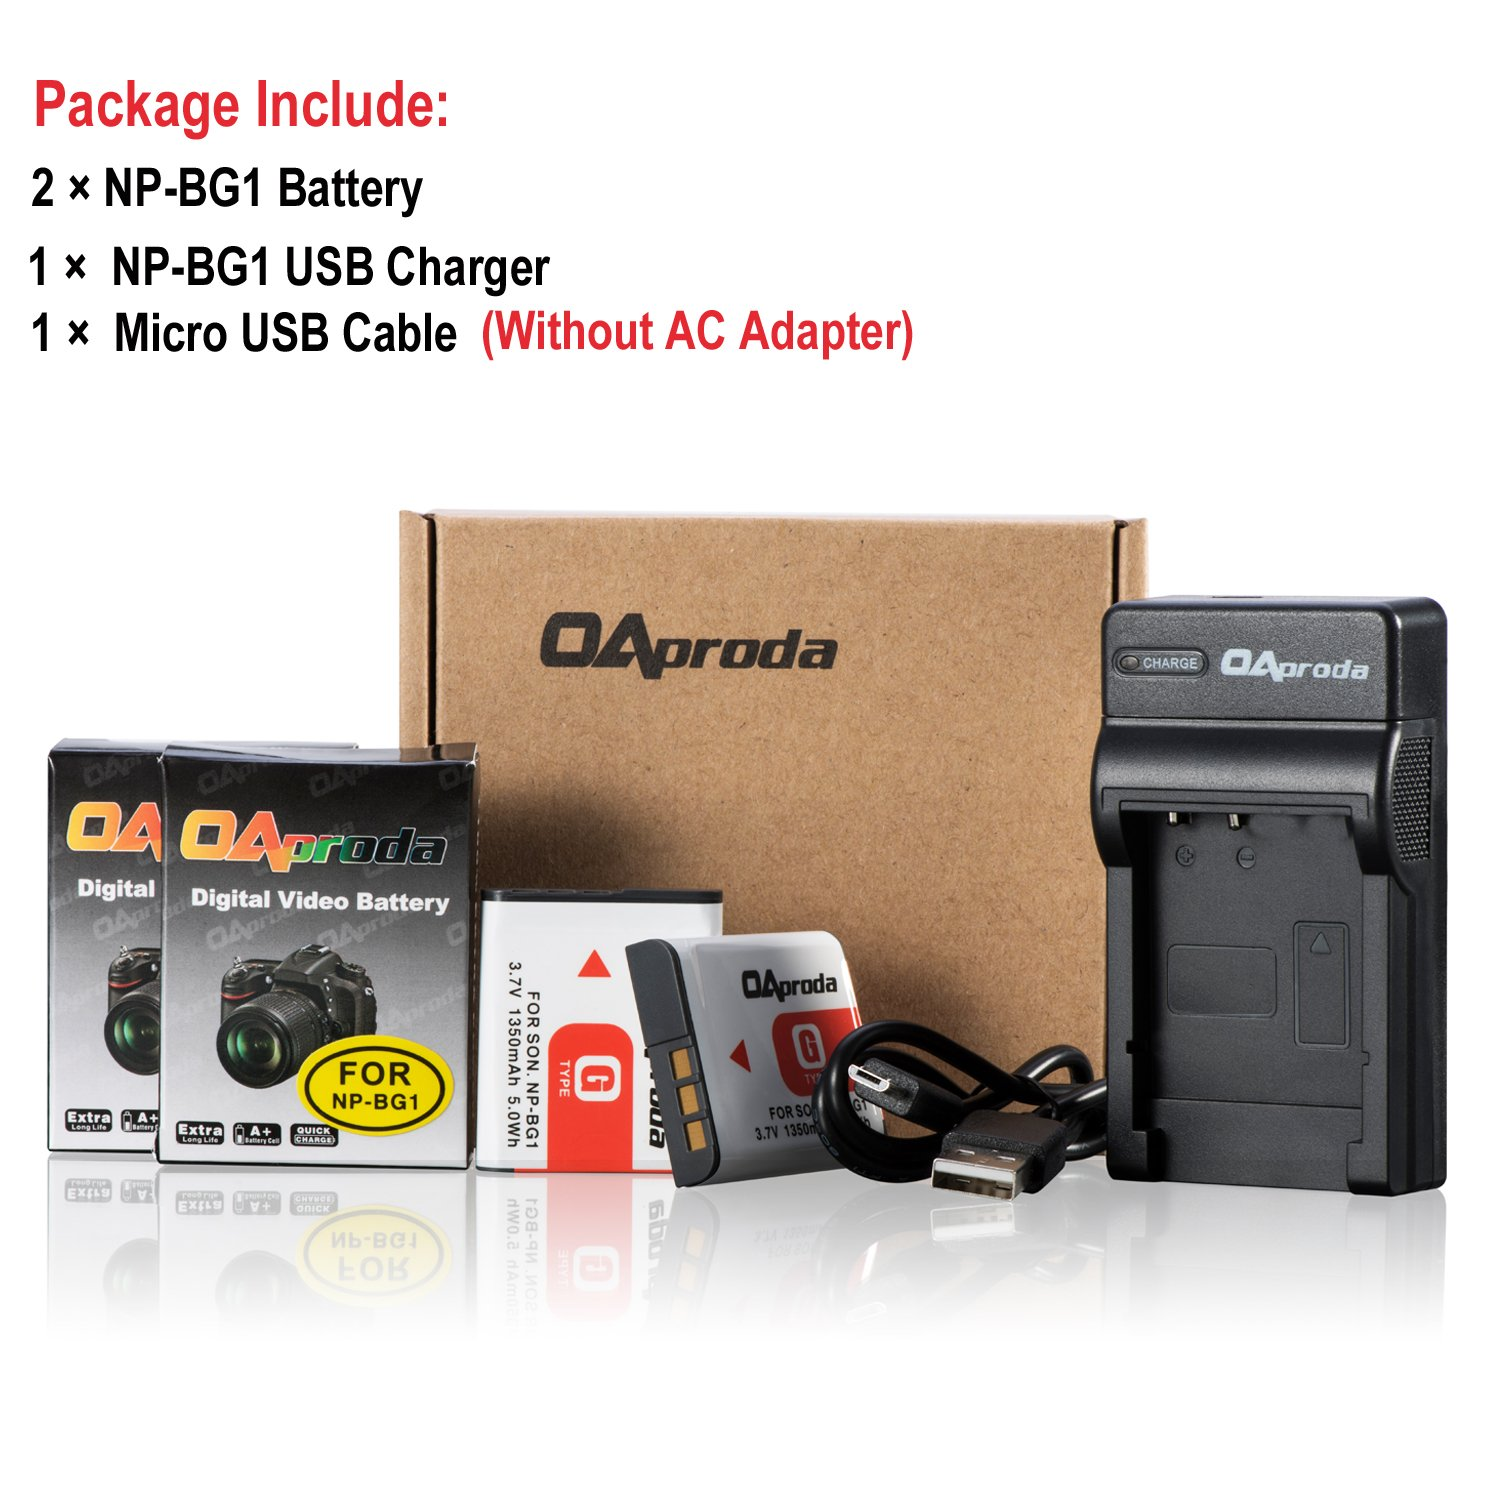 Halcyon 1200 mAH Lithium Ion Replacement Battery and Charger Kit for Sony DSC-W830 Digital Camera and Sony NP-BN1